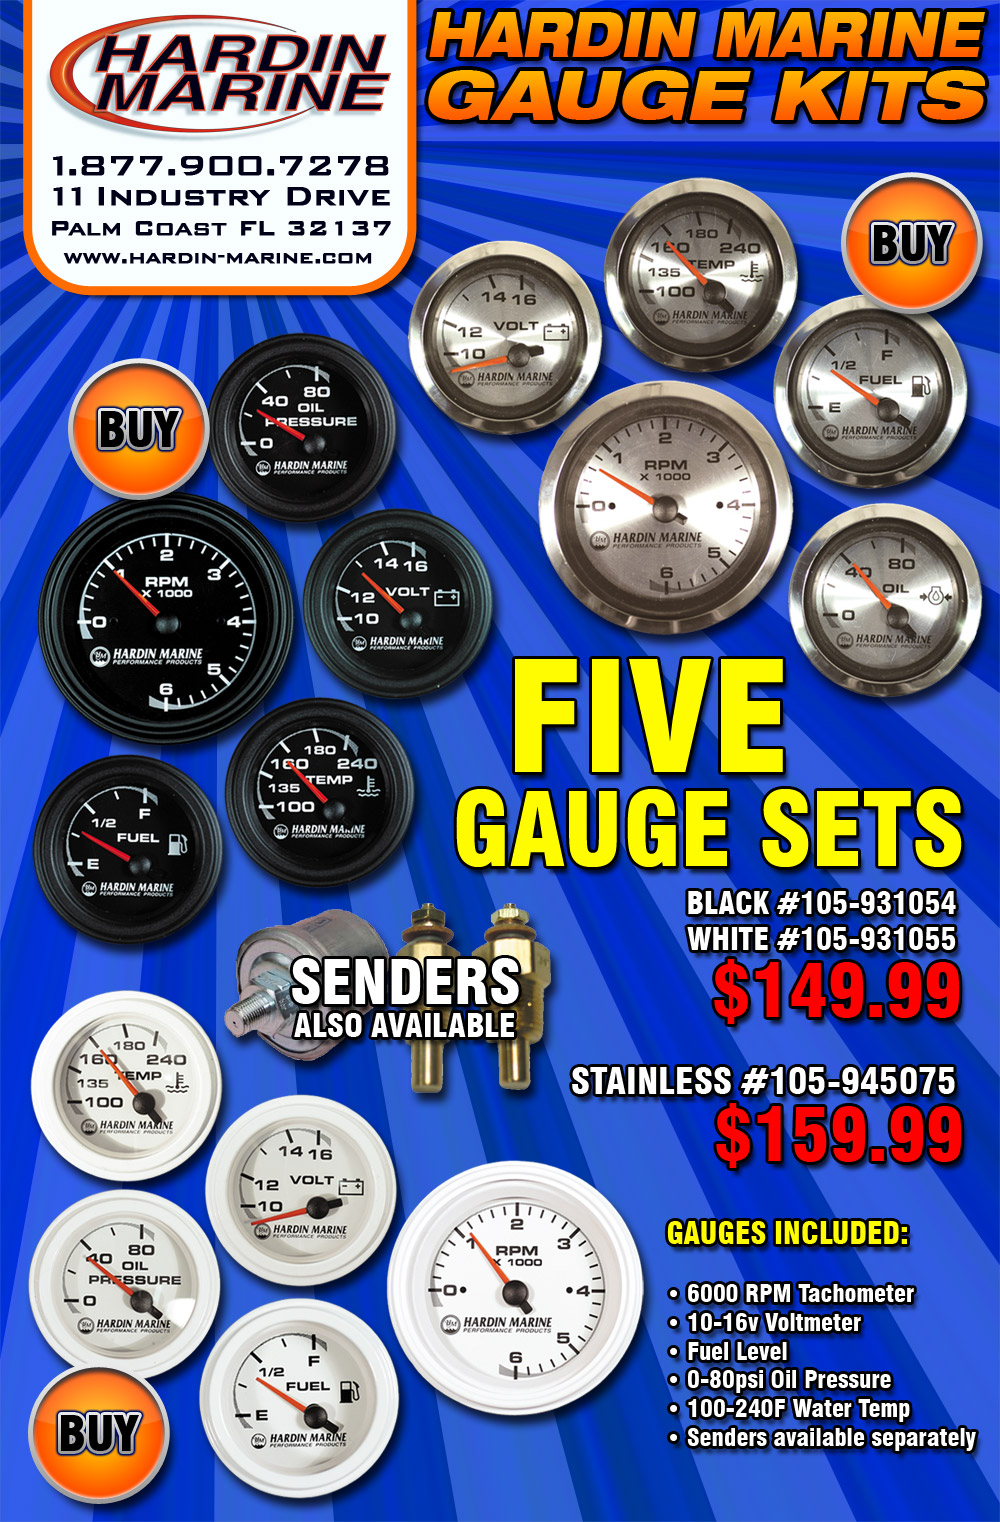 Geico Marine Insurance >> Get great value from your gauges with Hardin Marine Gauge Sets